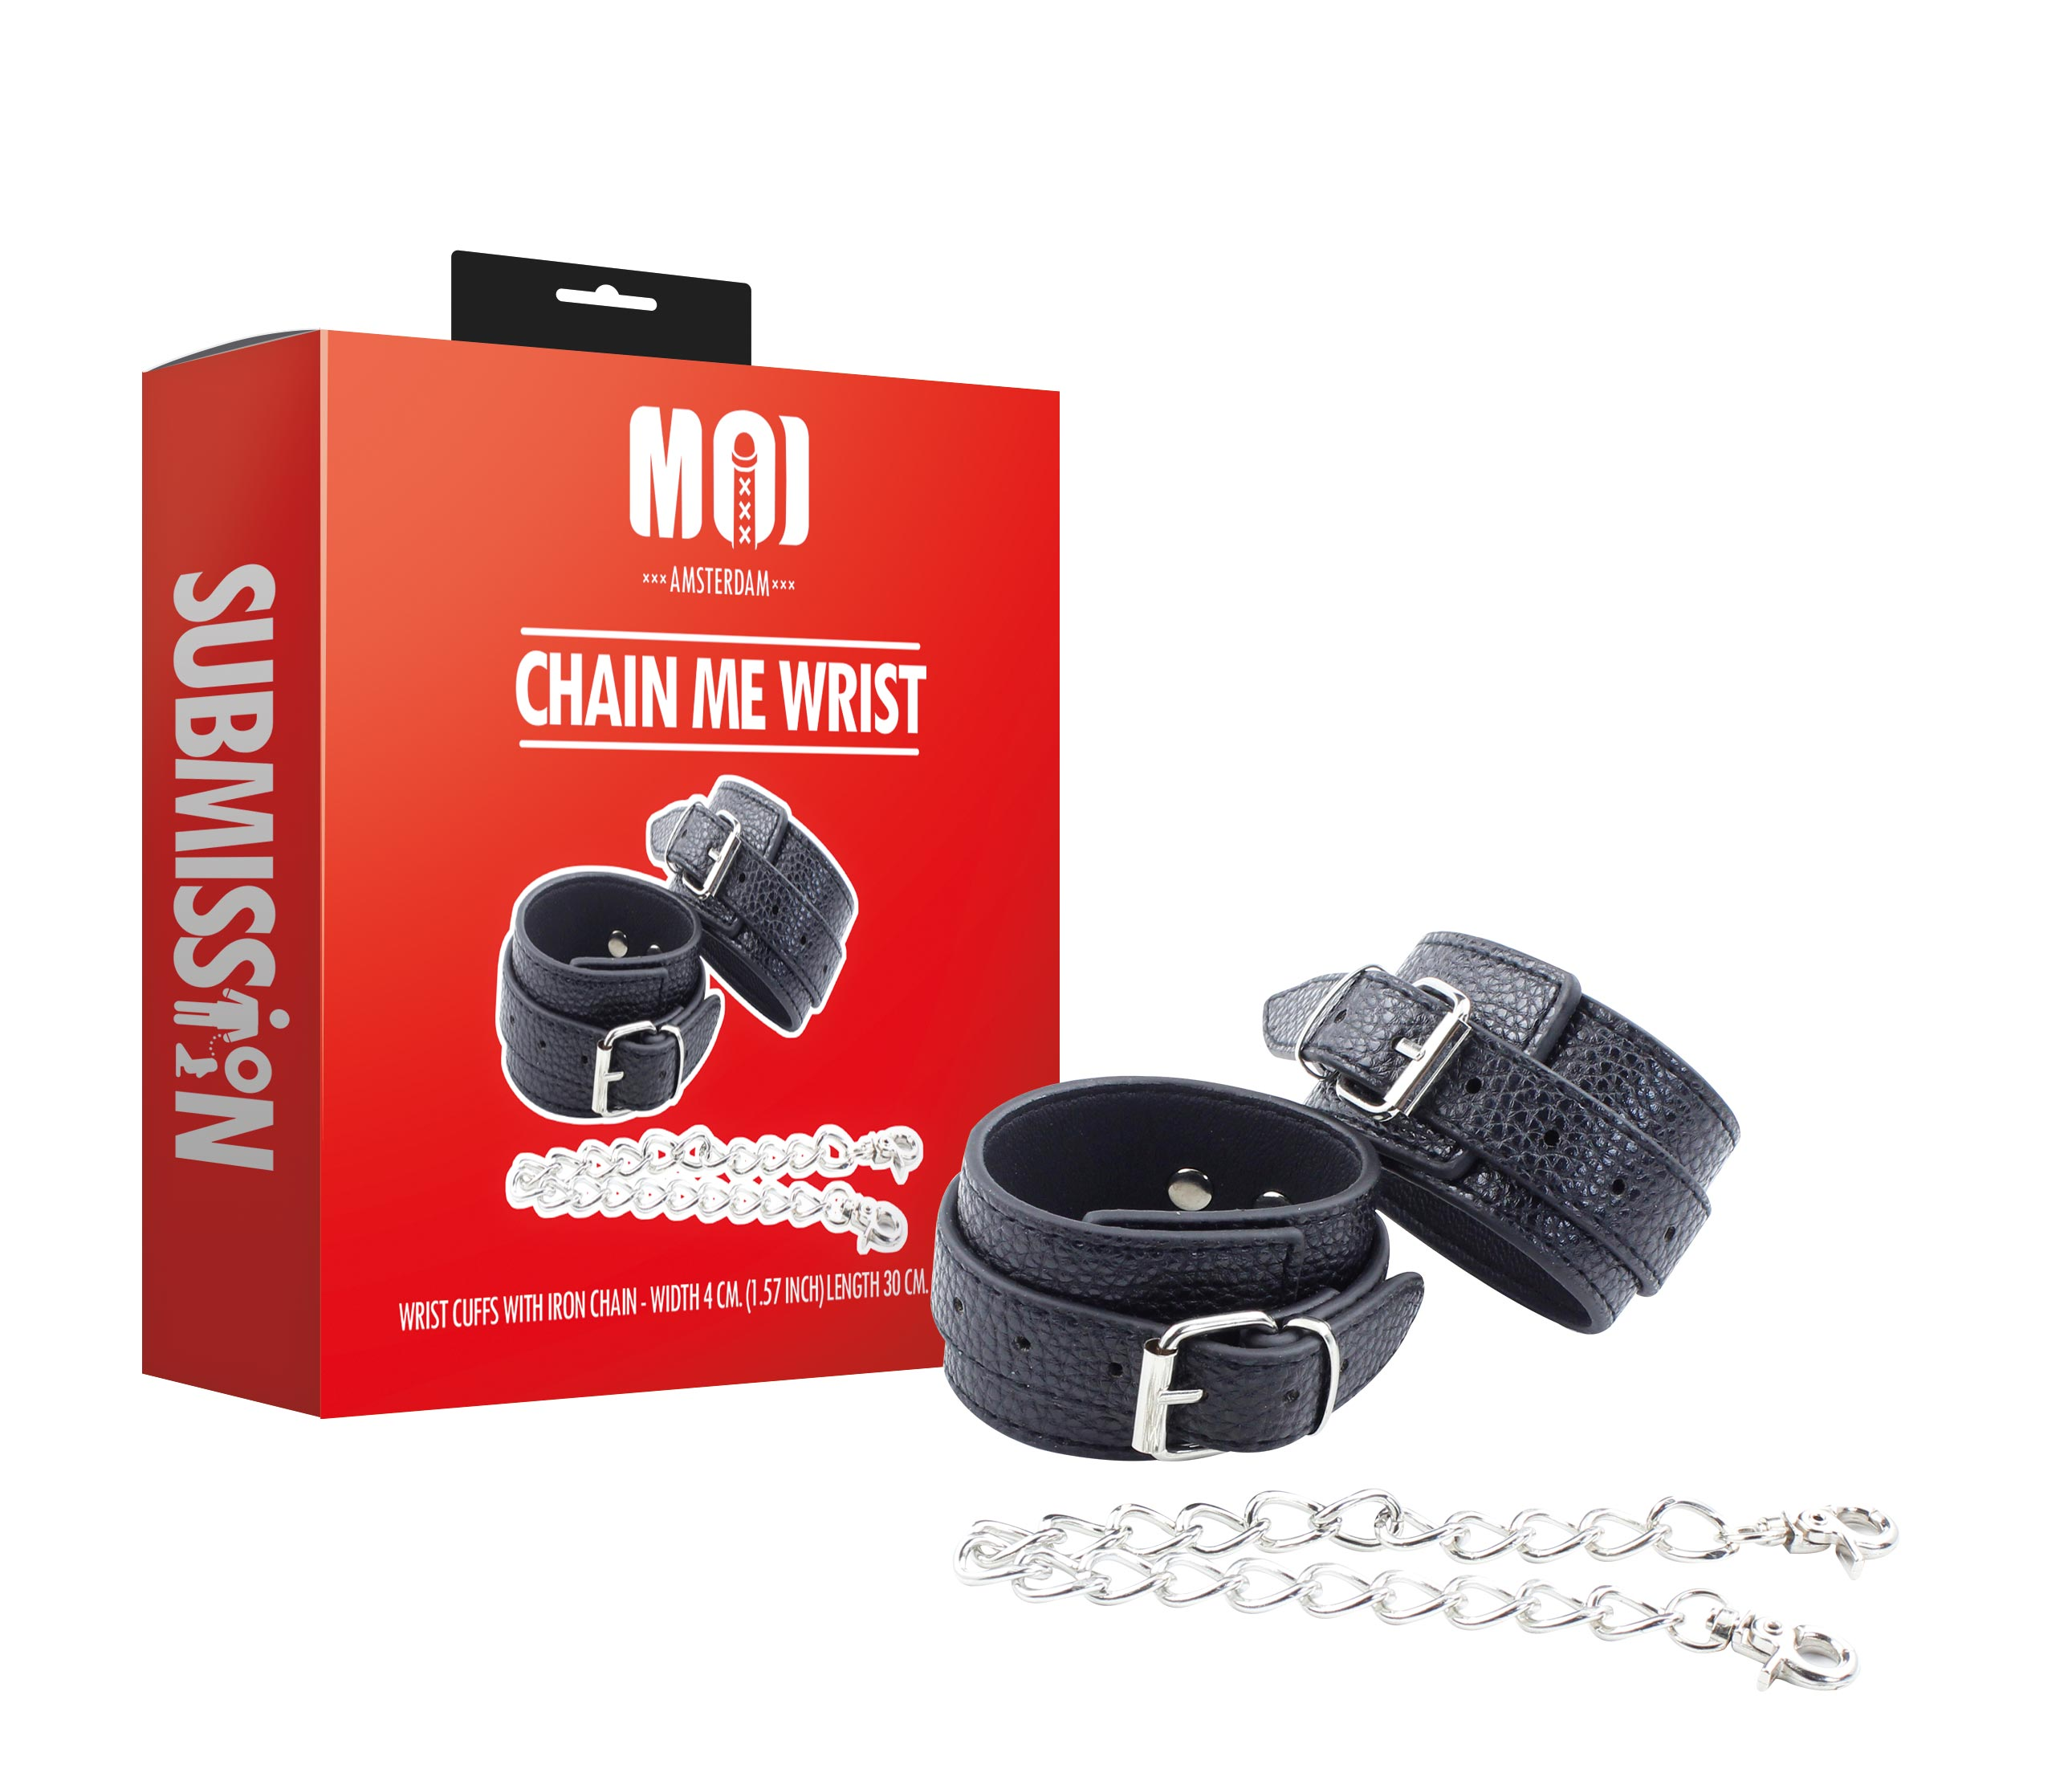 Chain Me Wrist | Wrist Cuffs With Iron Chain - Width 4 cm. (1.57 inch) Length 30 cm. (11.80 inch)